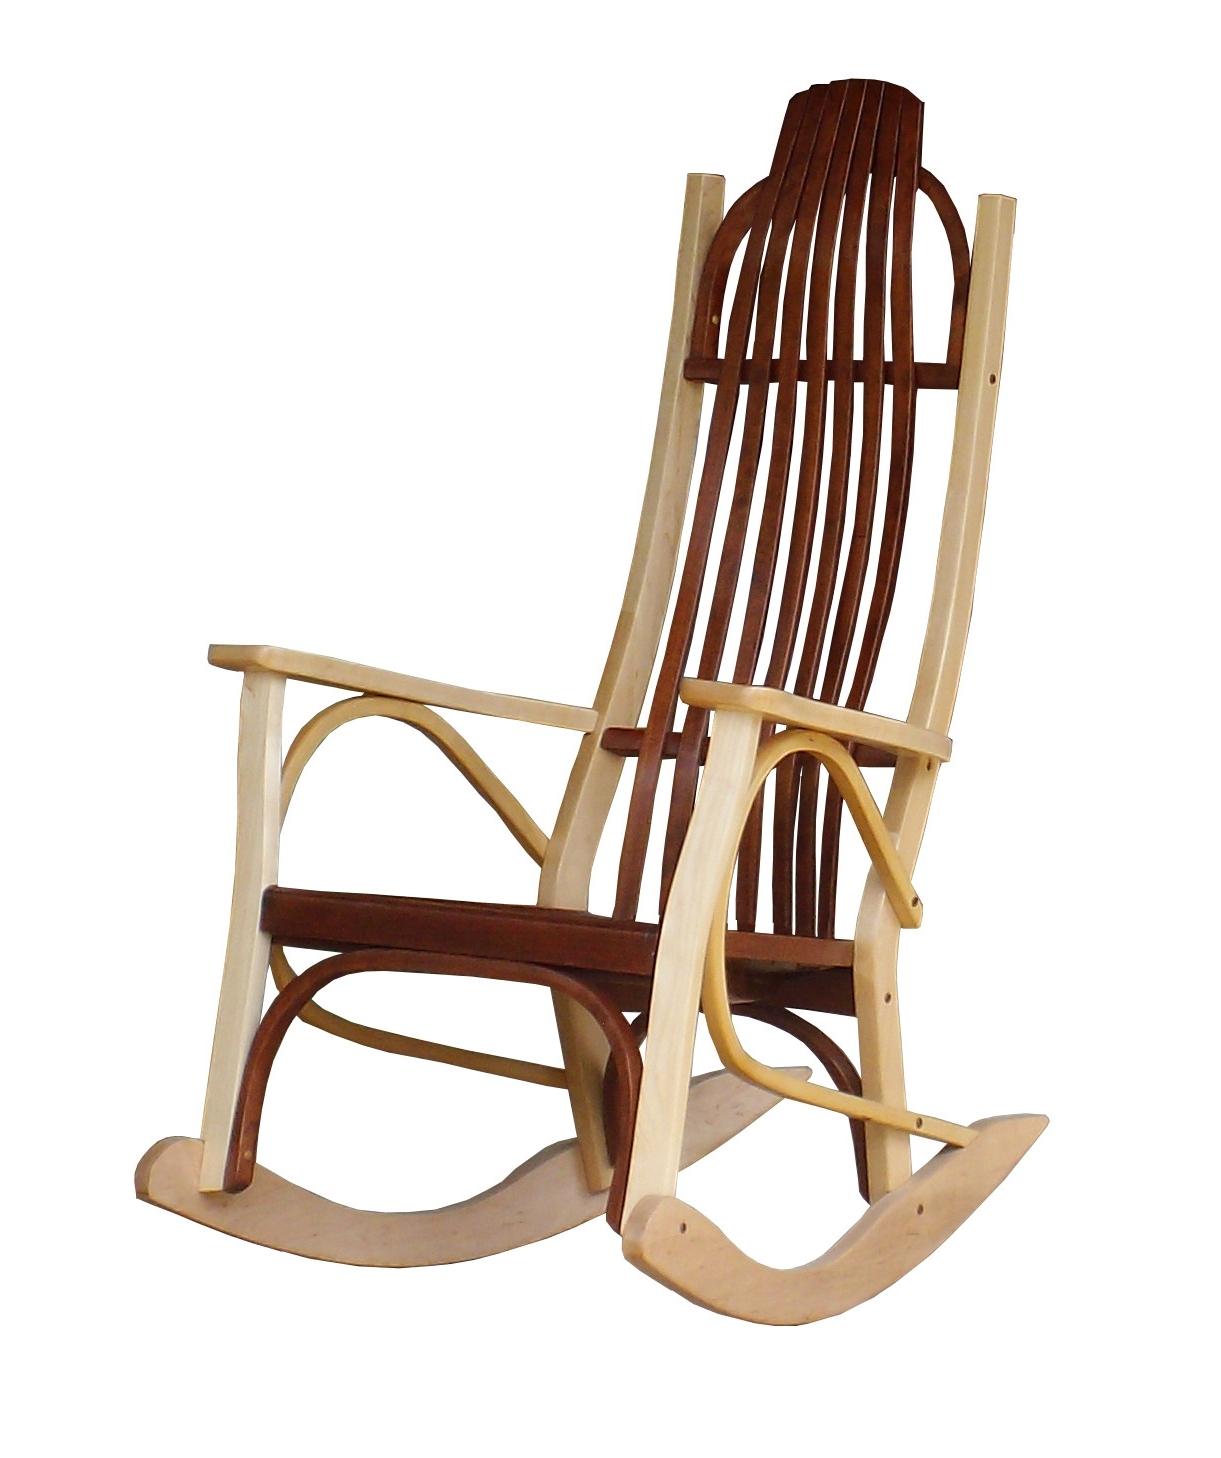 Amazon Rocking Chairs Regarding Favorite Contemporary Rocking Chair Popular Cherry And Maple Wood In  (View 3 of 20)